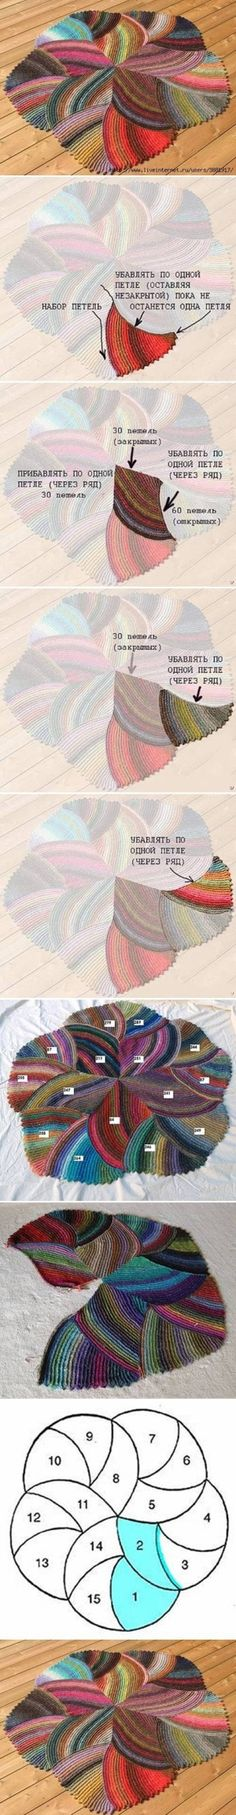 DIY Knit Melange Rug. Additional info at http://www.howtoinstructions.org/how-to-make-melange-rug-step-by-step-diy-tutorial-instructions/ and http://www.liveinternet.ru/users/4342044/post161415191/